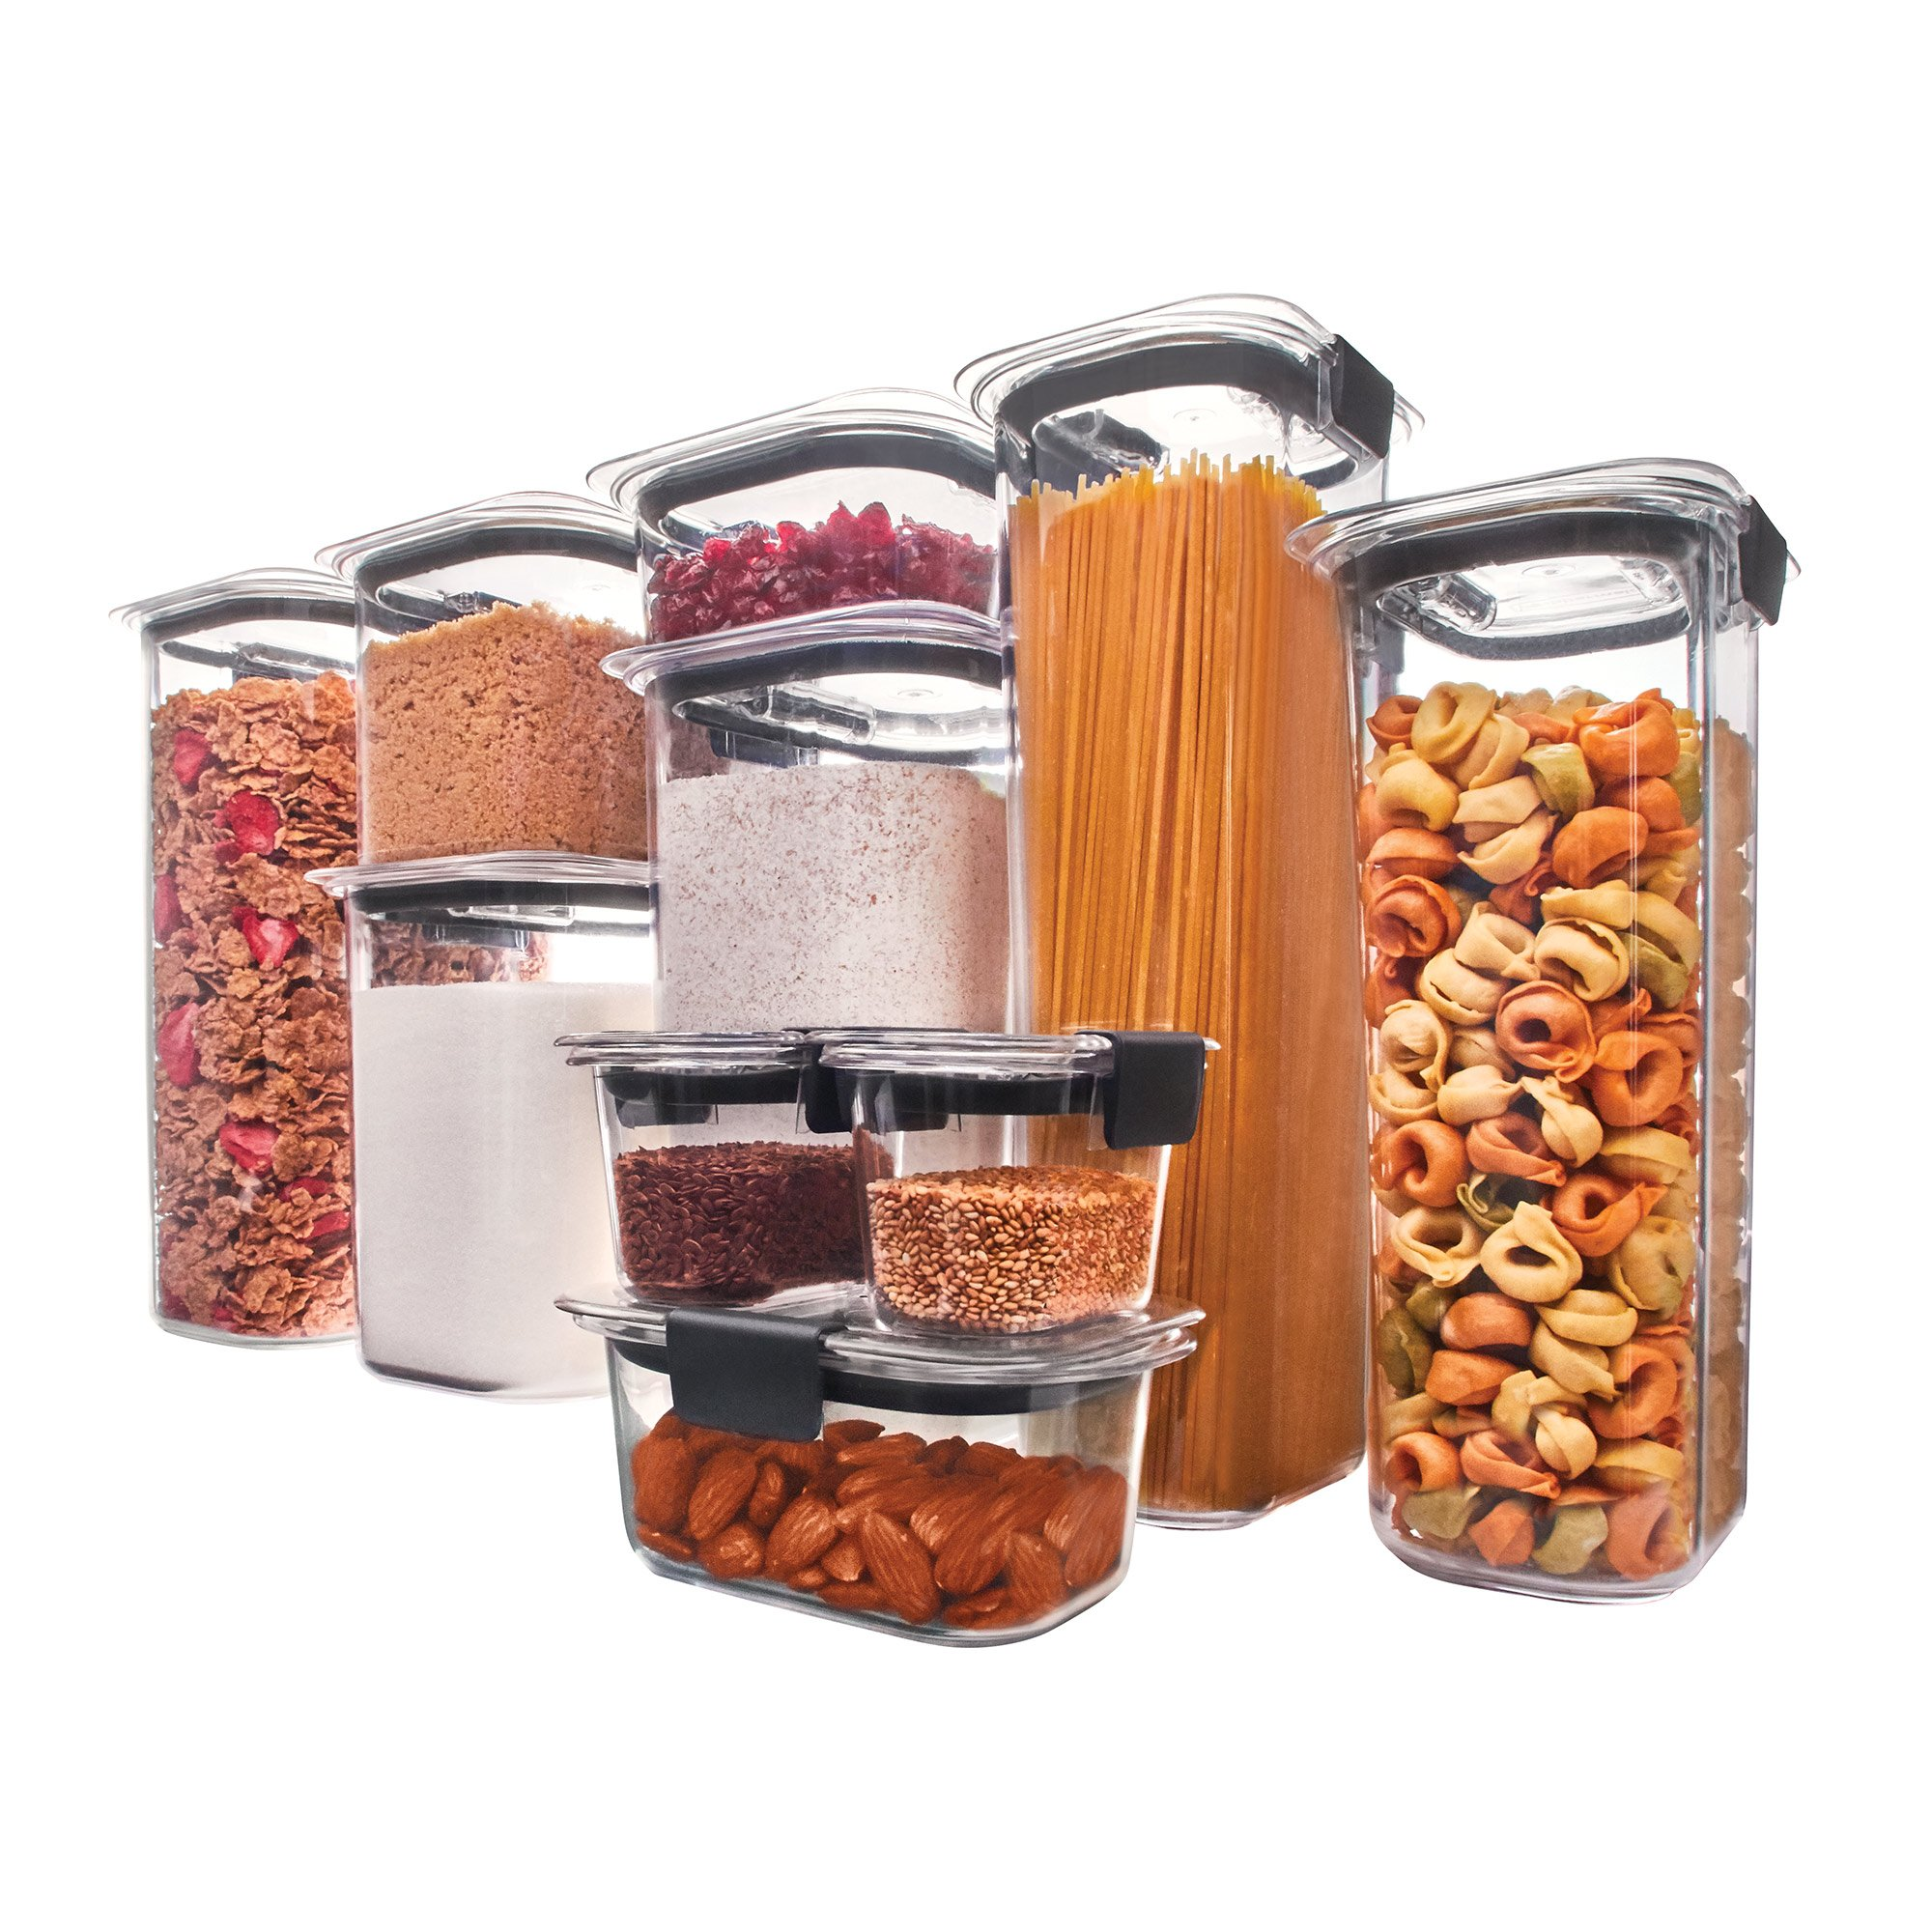 Rubbermaid 1994254 Brilliance Pantry Airtight Food Storage Container BPA-free Plastic, Set by Rubbermaid